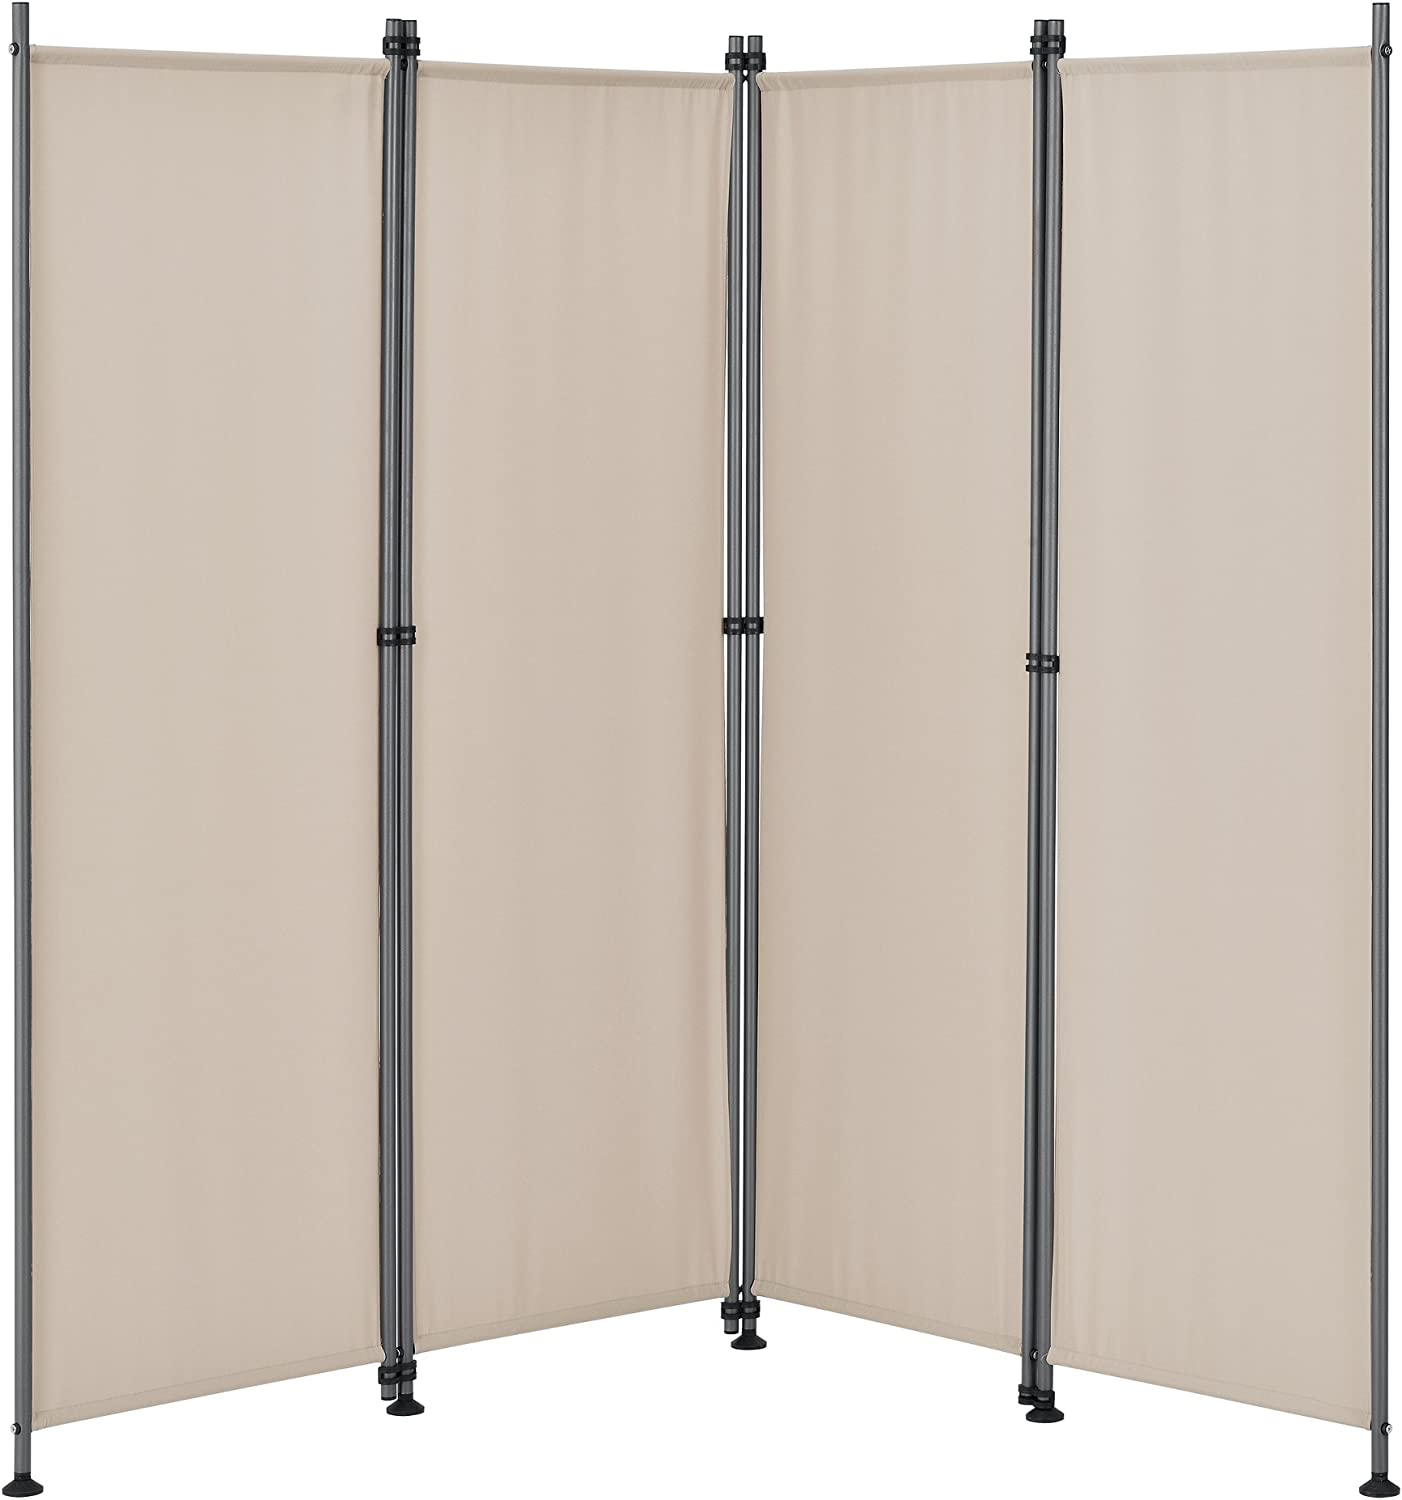 pro.tec]® Pared divisoria / Biombo - 215 x 170 cm - Color de arena ...